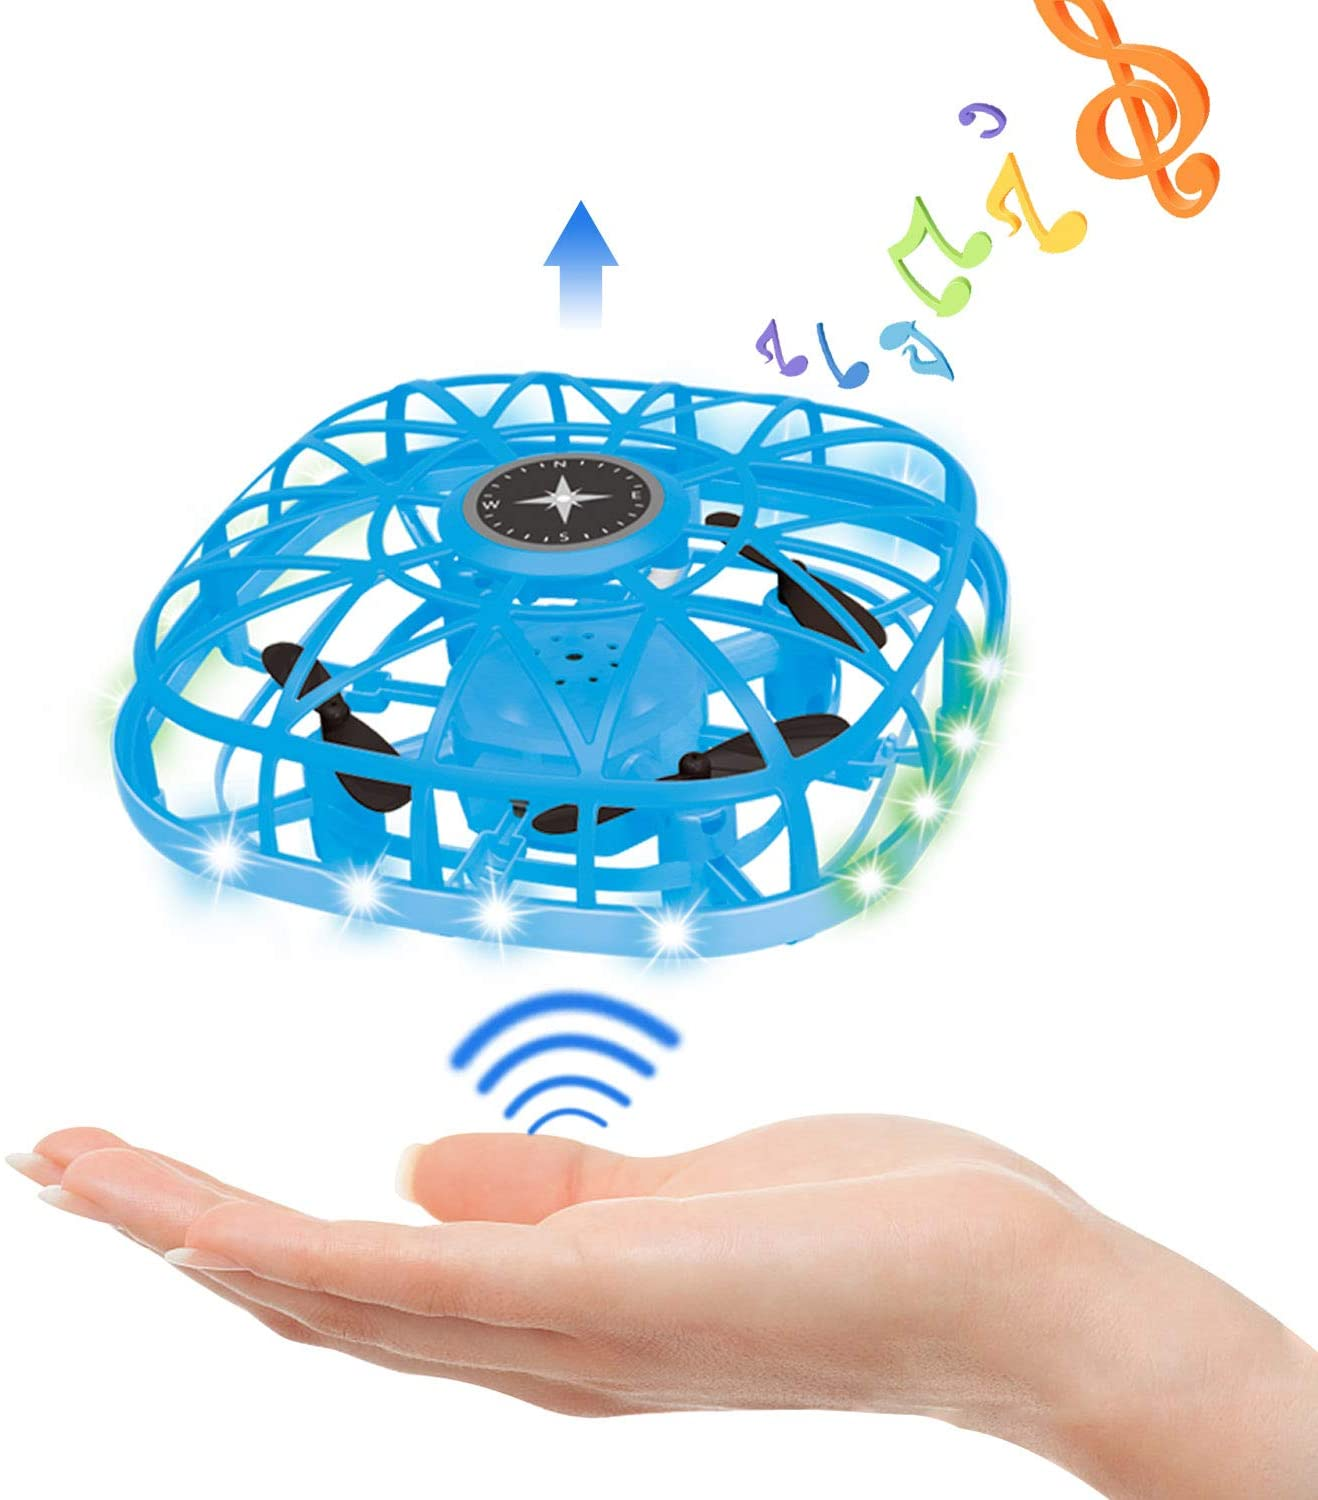 YongnKids Flying Ball Drones for Kids,Mini Drone Toys Gifts for Boys Girls 8 9 10 11 12 Year Old - Hand Free Operated Led Flashing Drone UFO Toys (Blue)